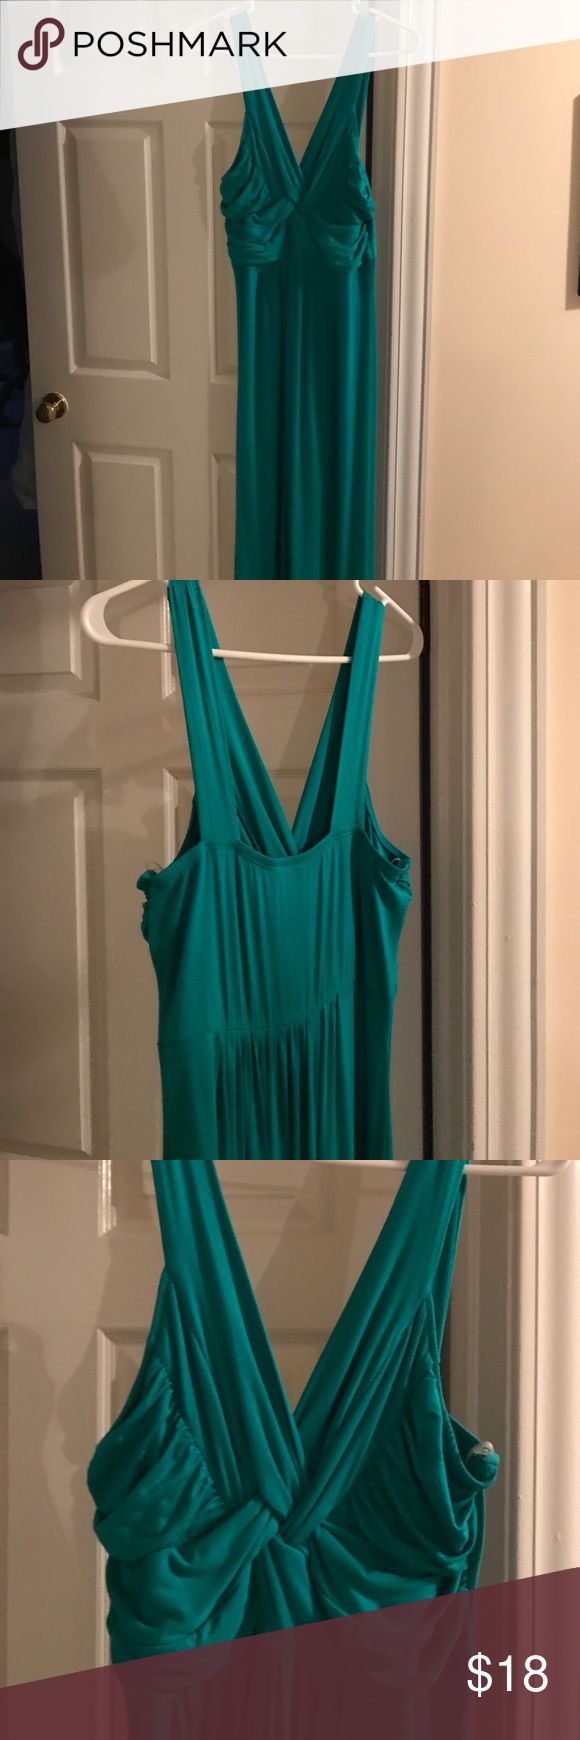 """Bright teal maxi dress. Teal cotton blend maxi dress. Beautiful criss cross/ruched top with long skirt.  From shoulder to bottom hem is 58.5"""". Perfect condition. It's long on me and I'm 5'8"""". I can wear heels with it. Charming Charlie Dresses Maxi"""